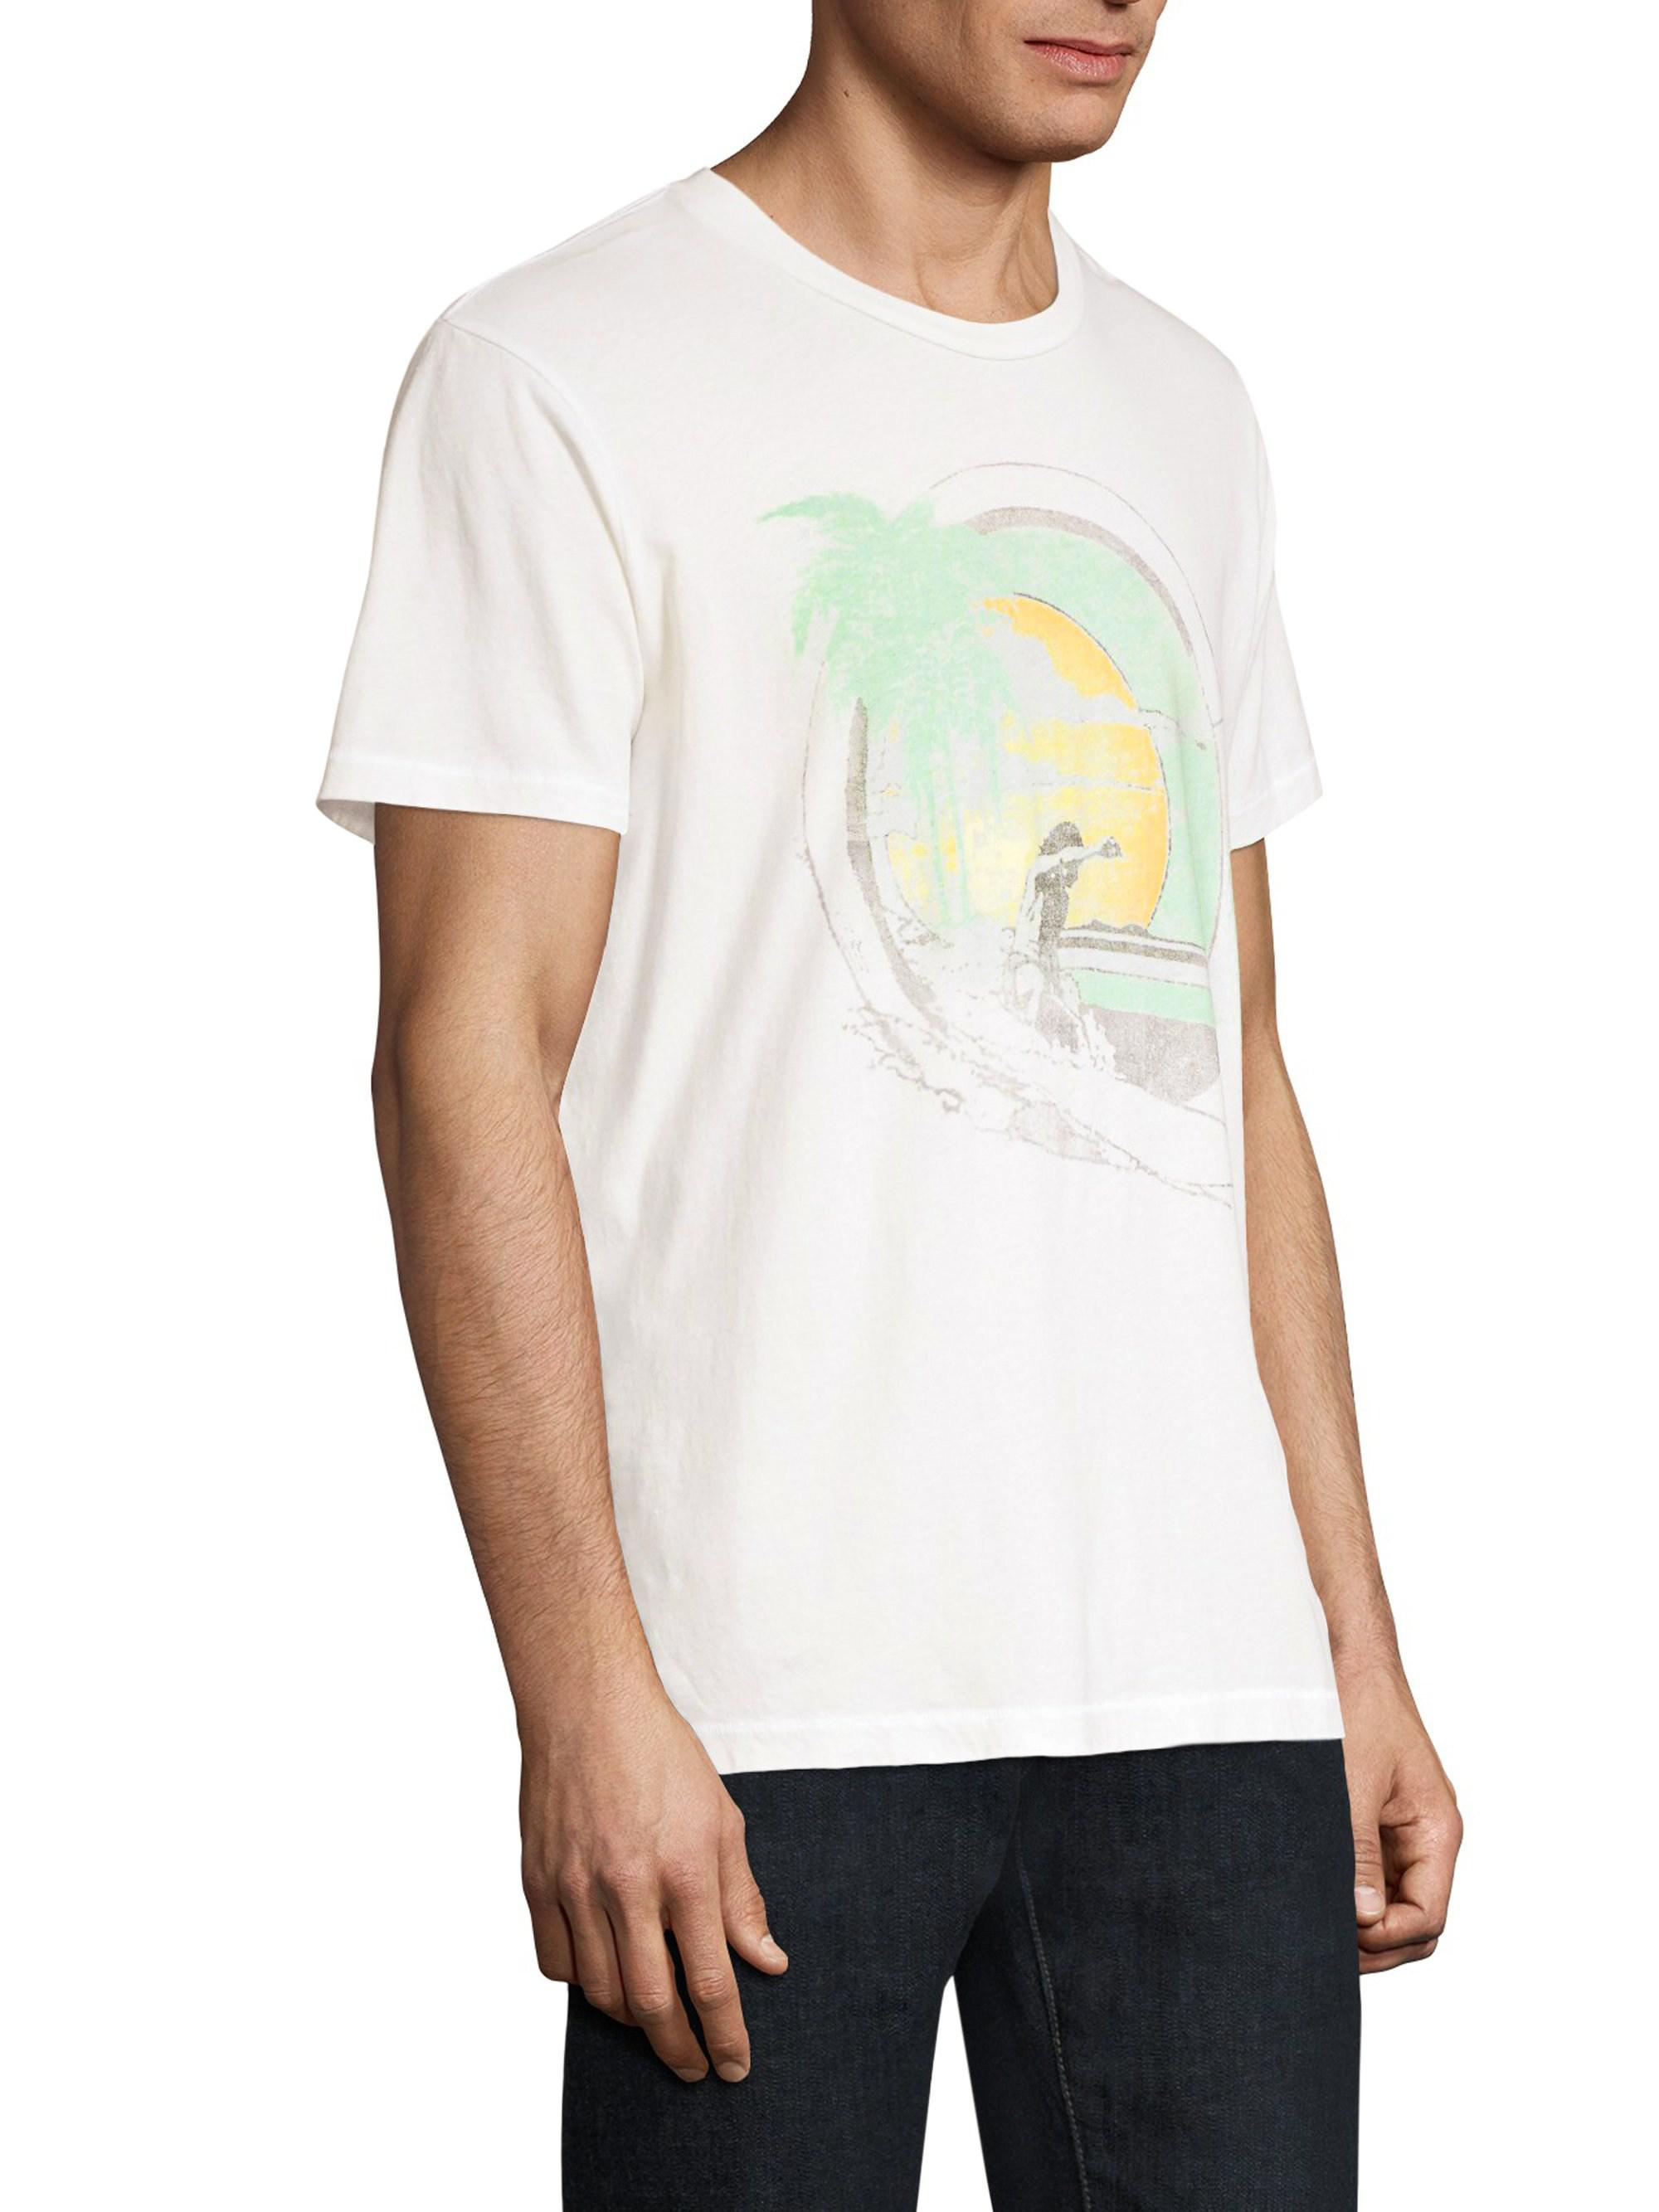 c21058d1 Sol Angeles Slim-fit Graphic Tee in White for Men - Lyst